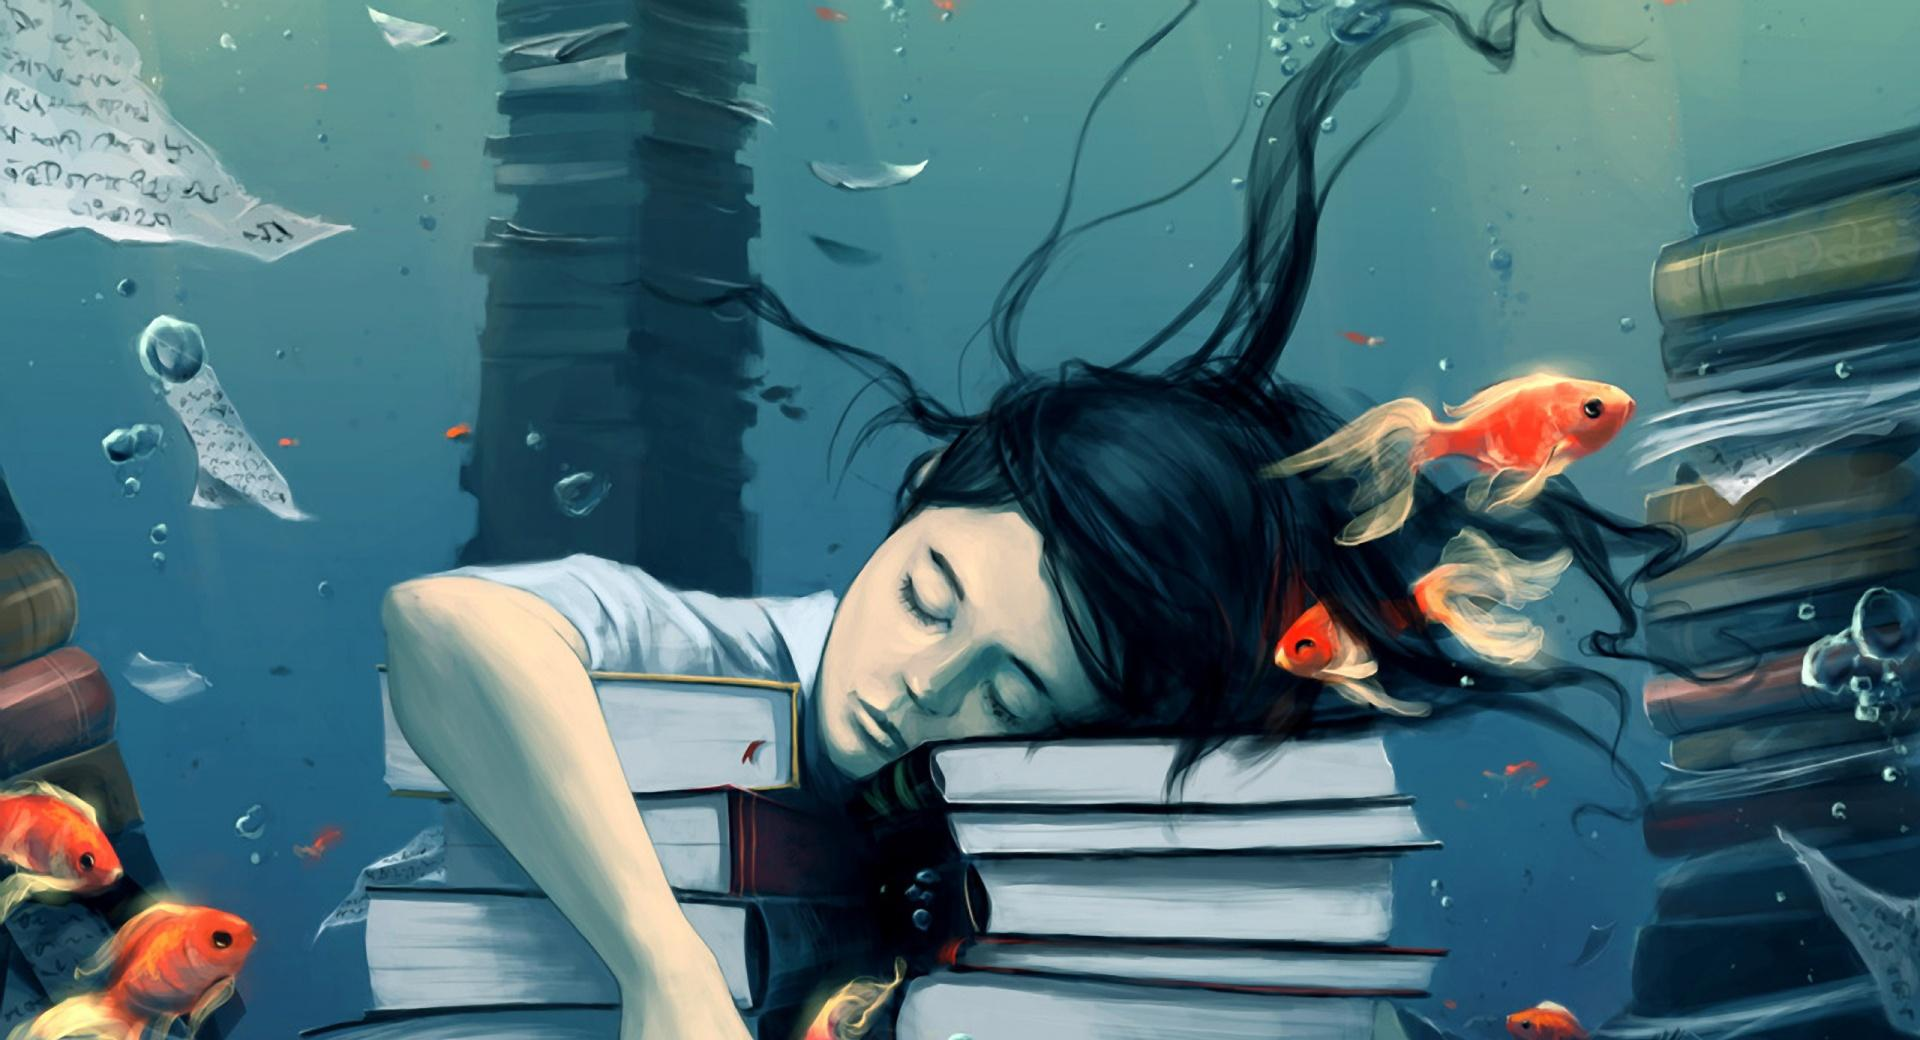 Sleeping Painting wallpapers HD quality